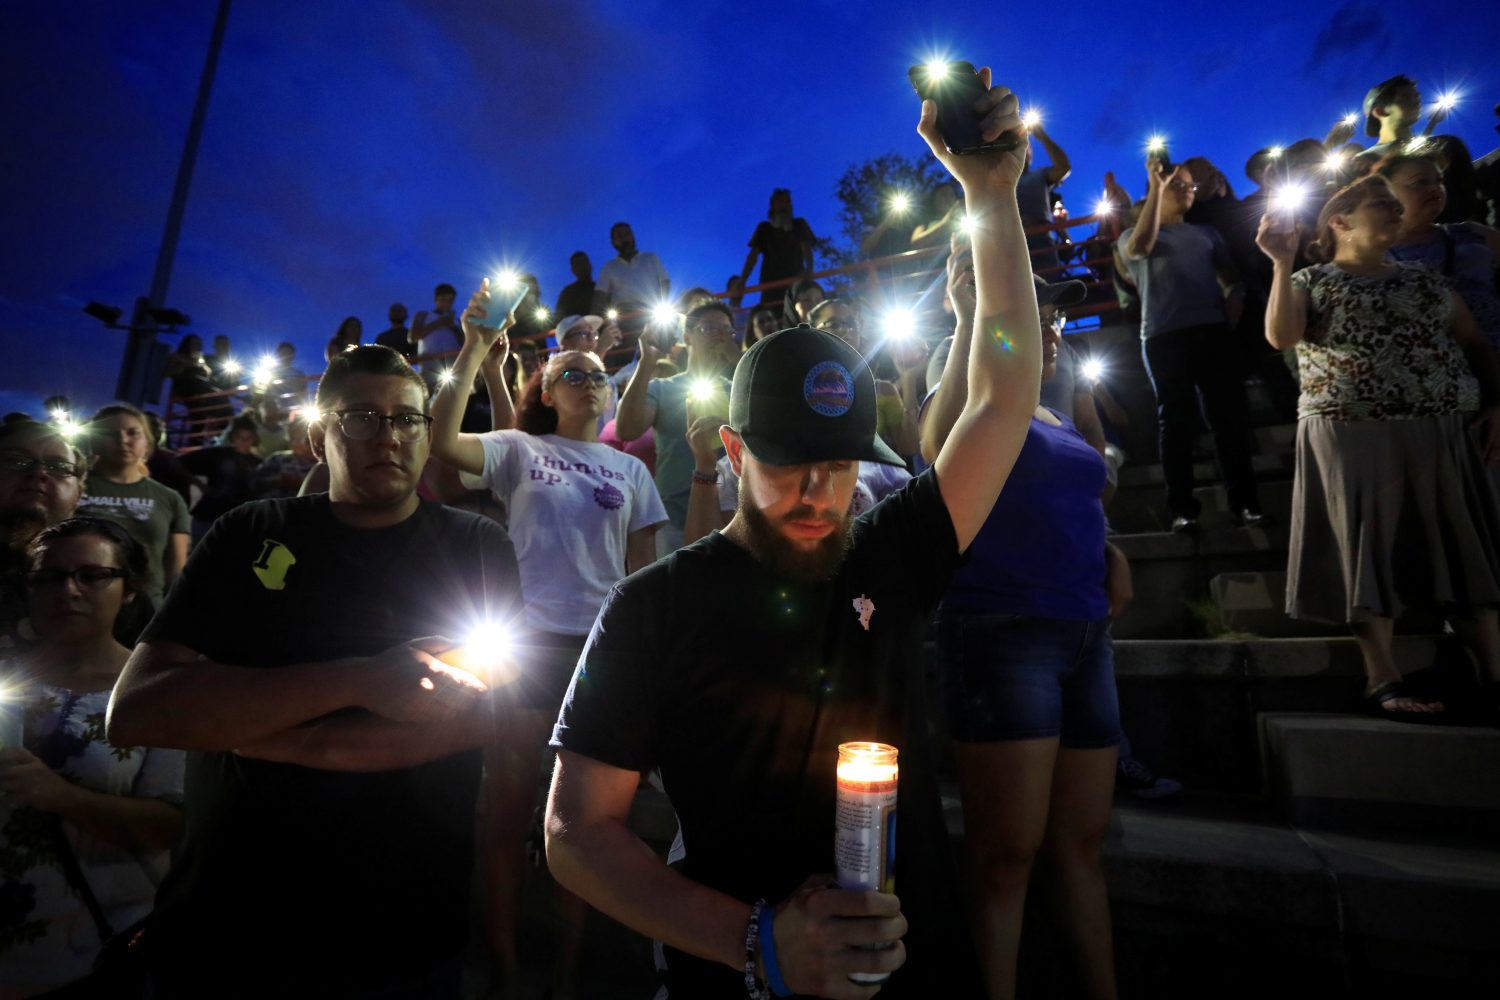 Francisco Castaneda joins mourners taking part in a vigil at El Paso High School after a mass shooting at a Walmart store in El Paso, Texas, U.S. August 3, 2019. REUTERS/Jorge Salgado NO RESALES. NO ARCHIVES.